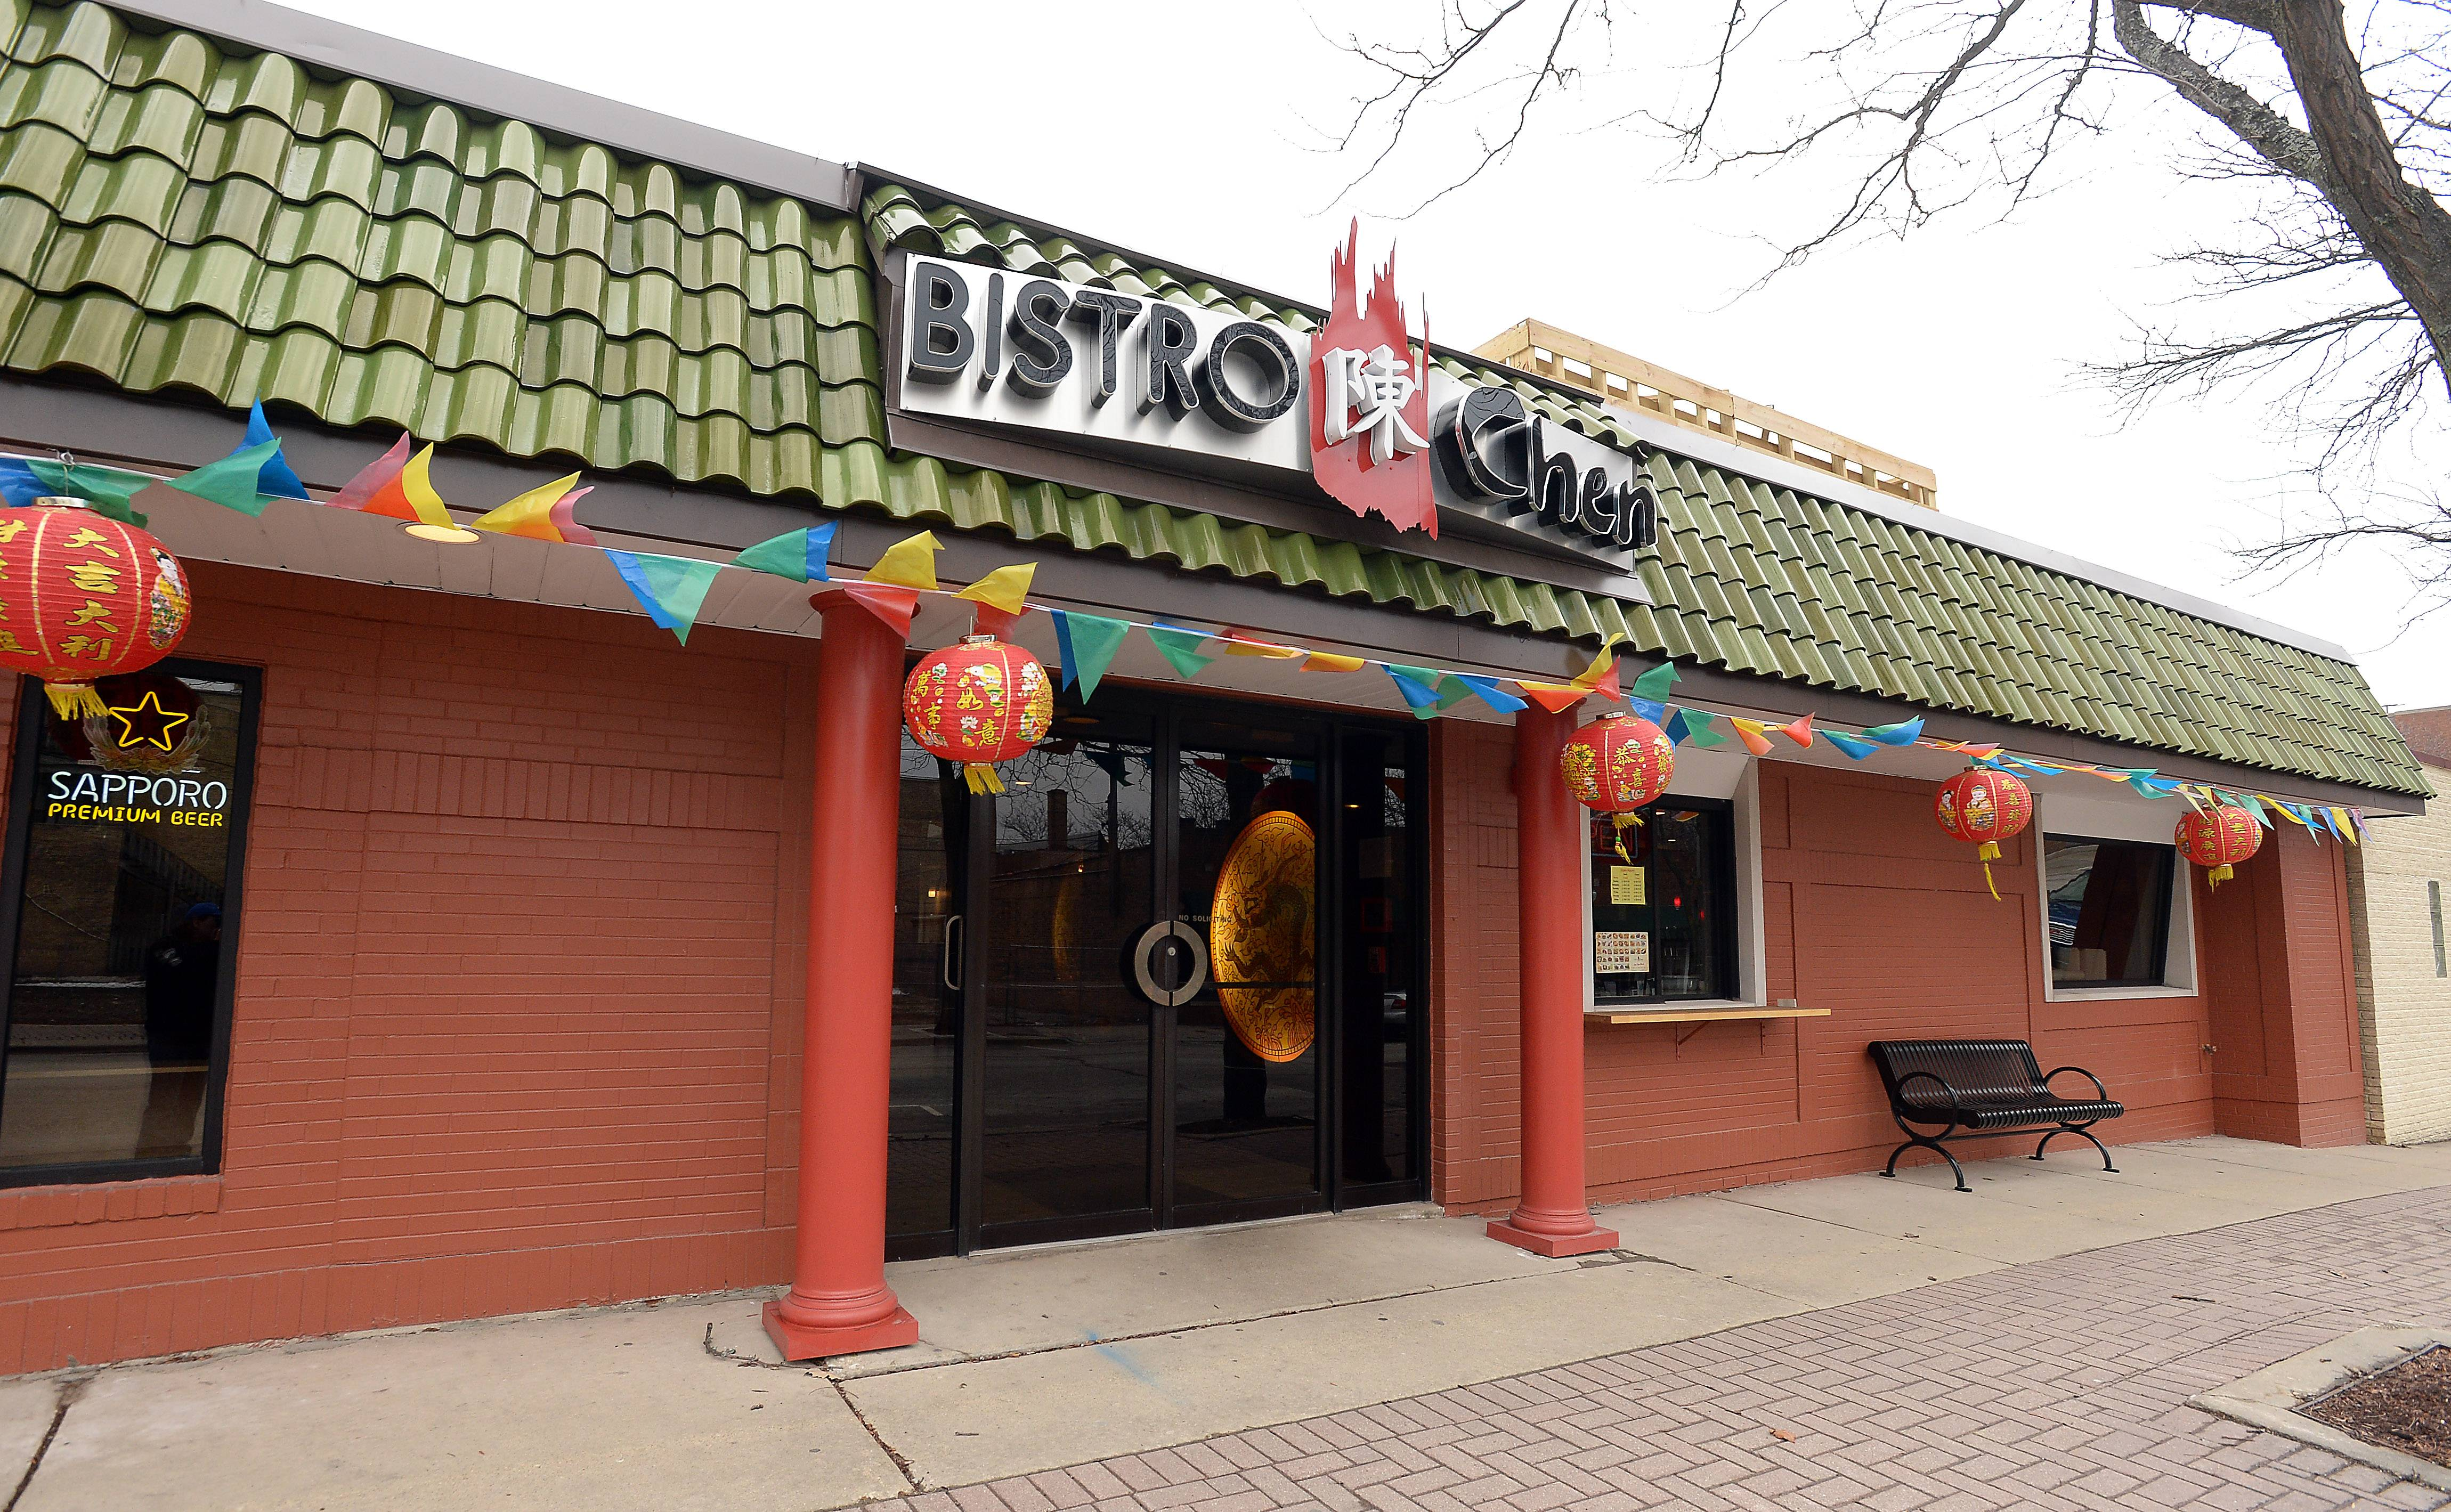 Bistro Chen in Arlington Heights opened in late 2013 in the spot where Chin's fed local families for more than 50 years.